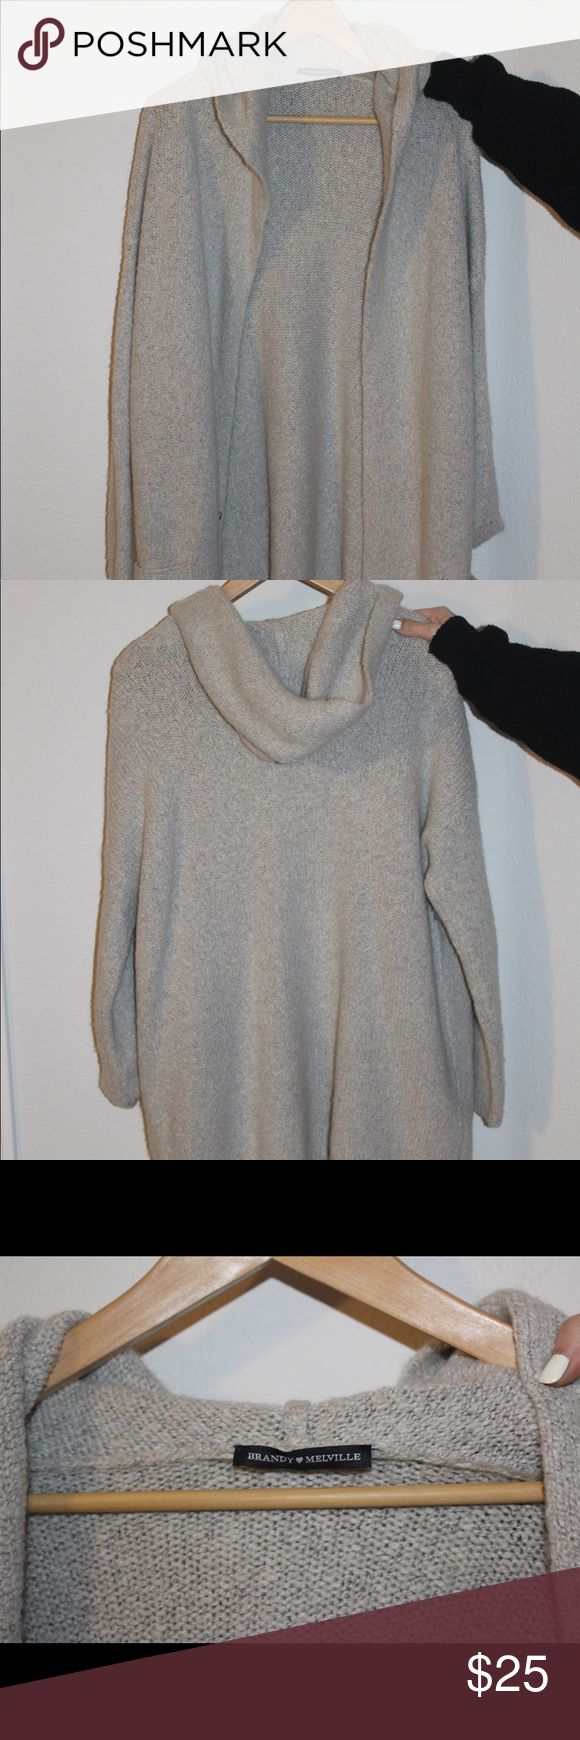 Light gray Brandy Melville cardigan It's a long, thick, light gray cardigan with two front pockets!! so cozy and great for layering!! Brandy Melville Jackets & Coats Trench Coats